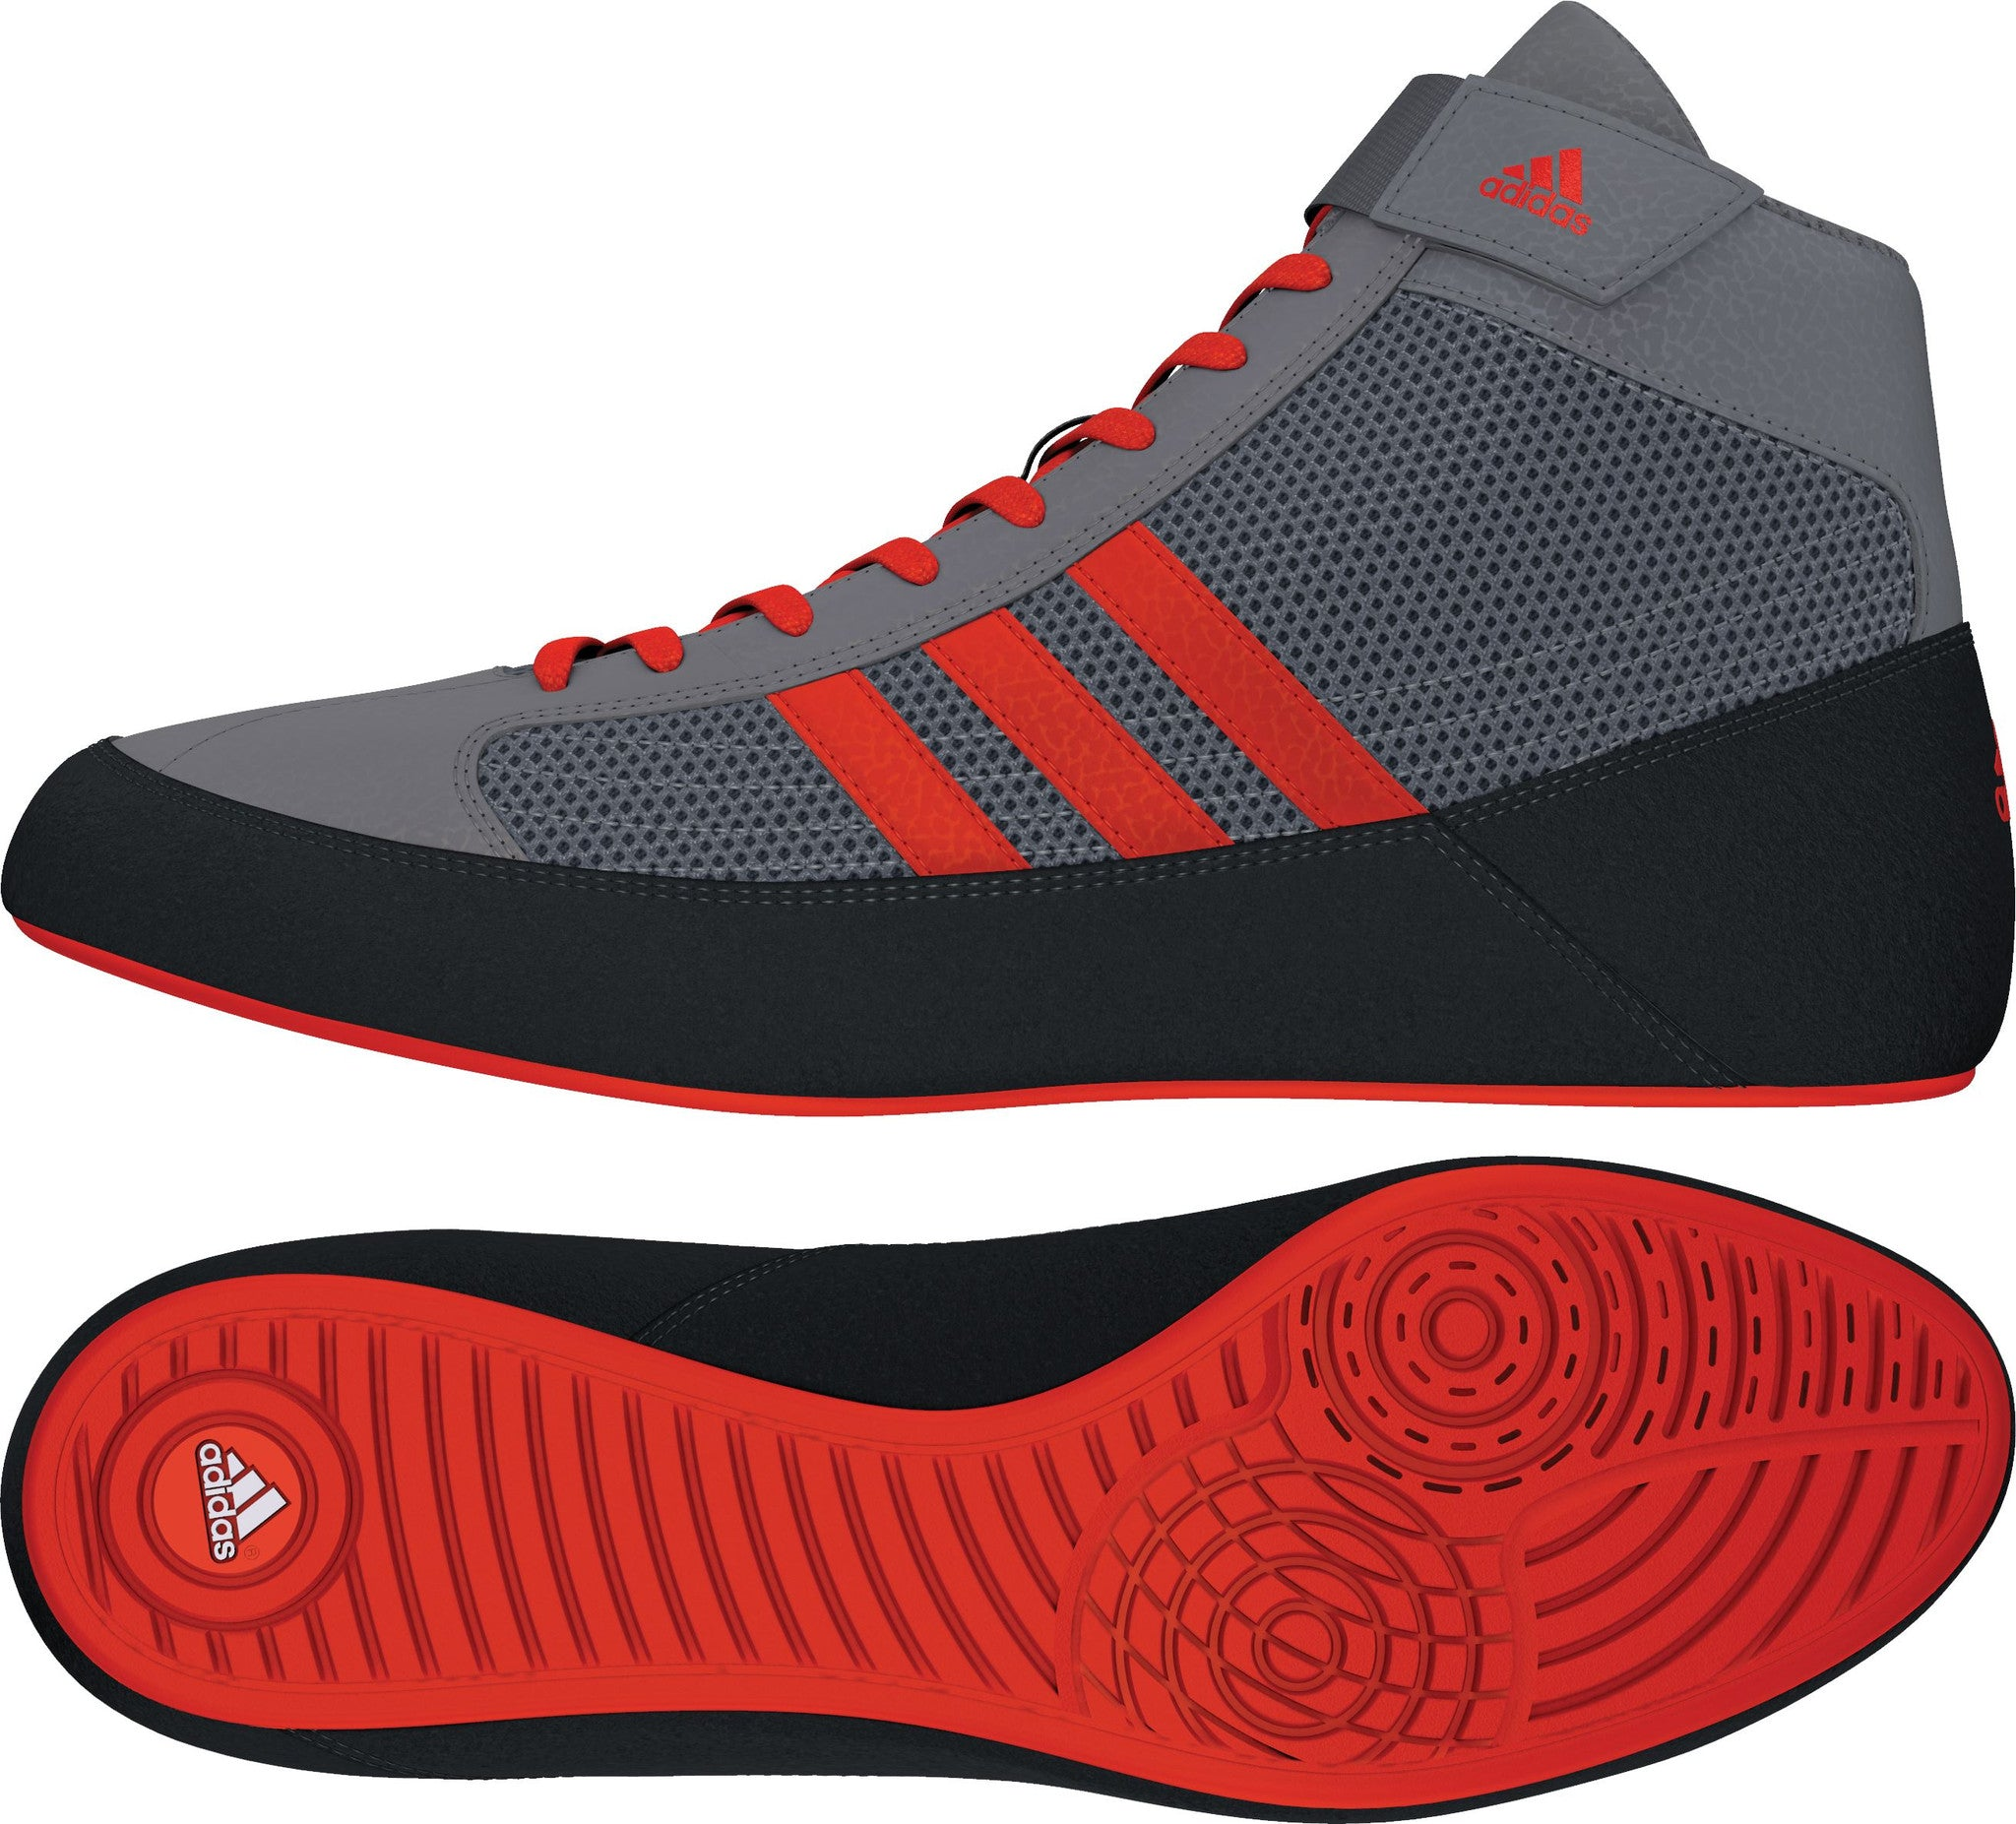 ADIDAS HVC 2 WRESTLING SHOES (2 COLOR OPTIONS)